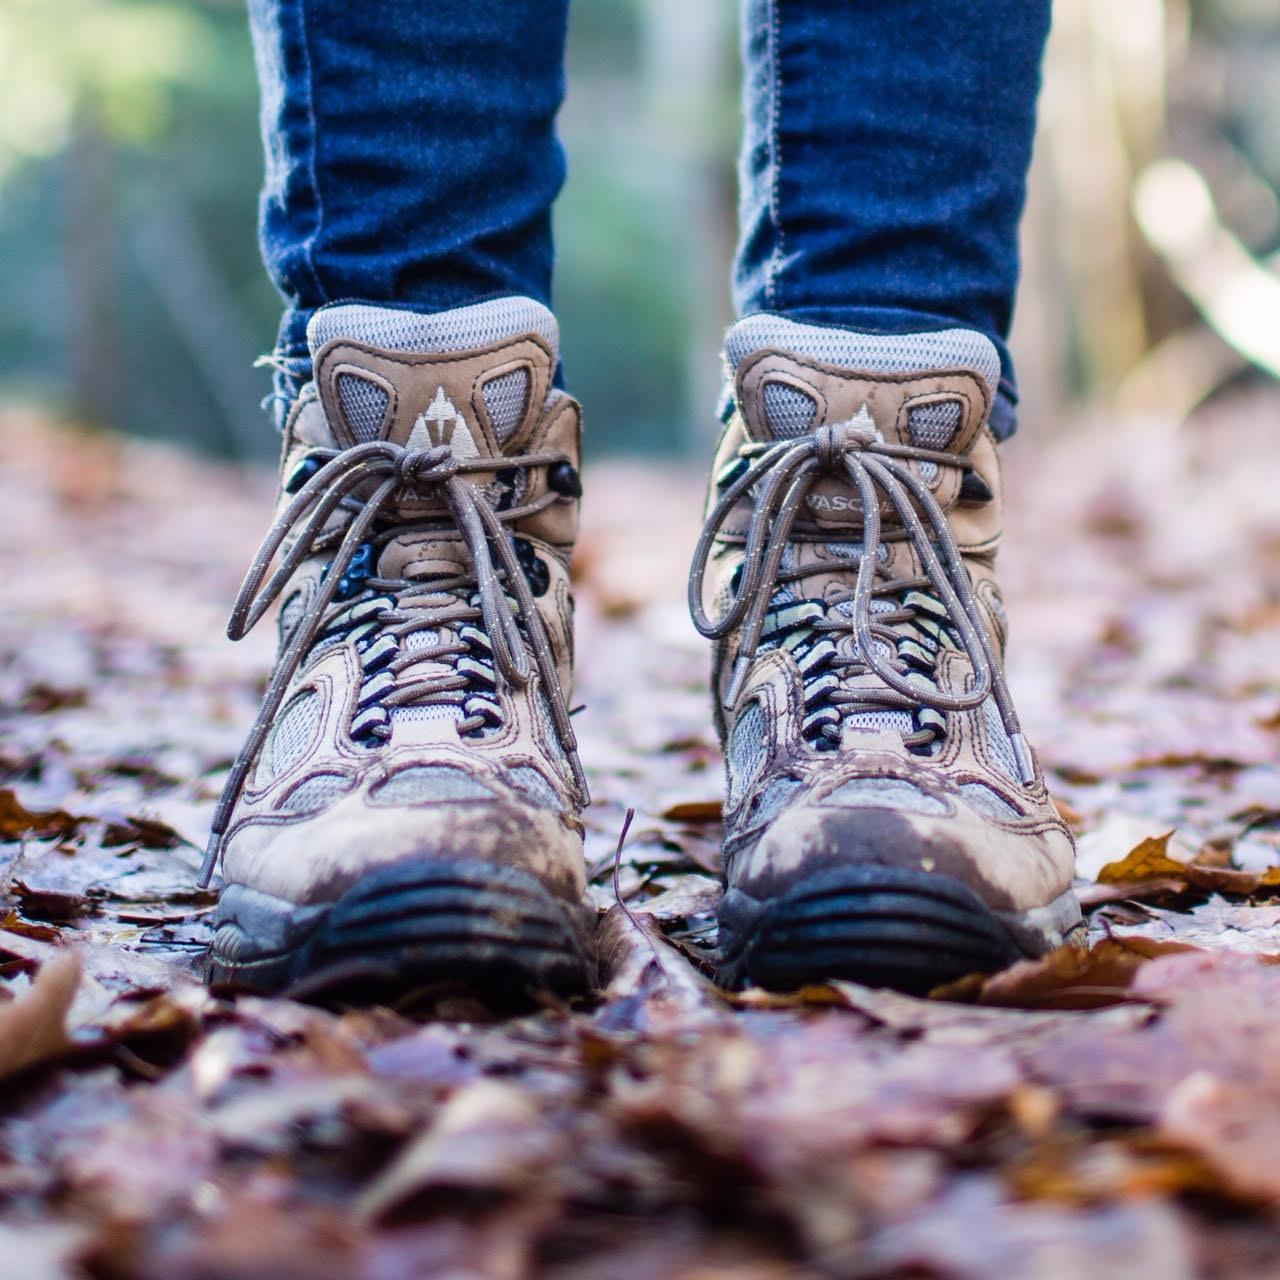 hiking boots on a leaf covered trail